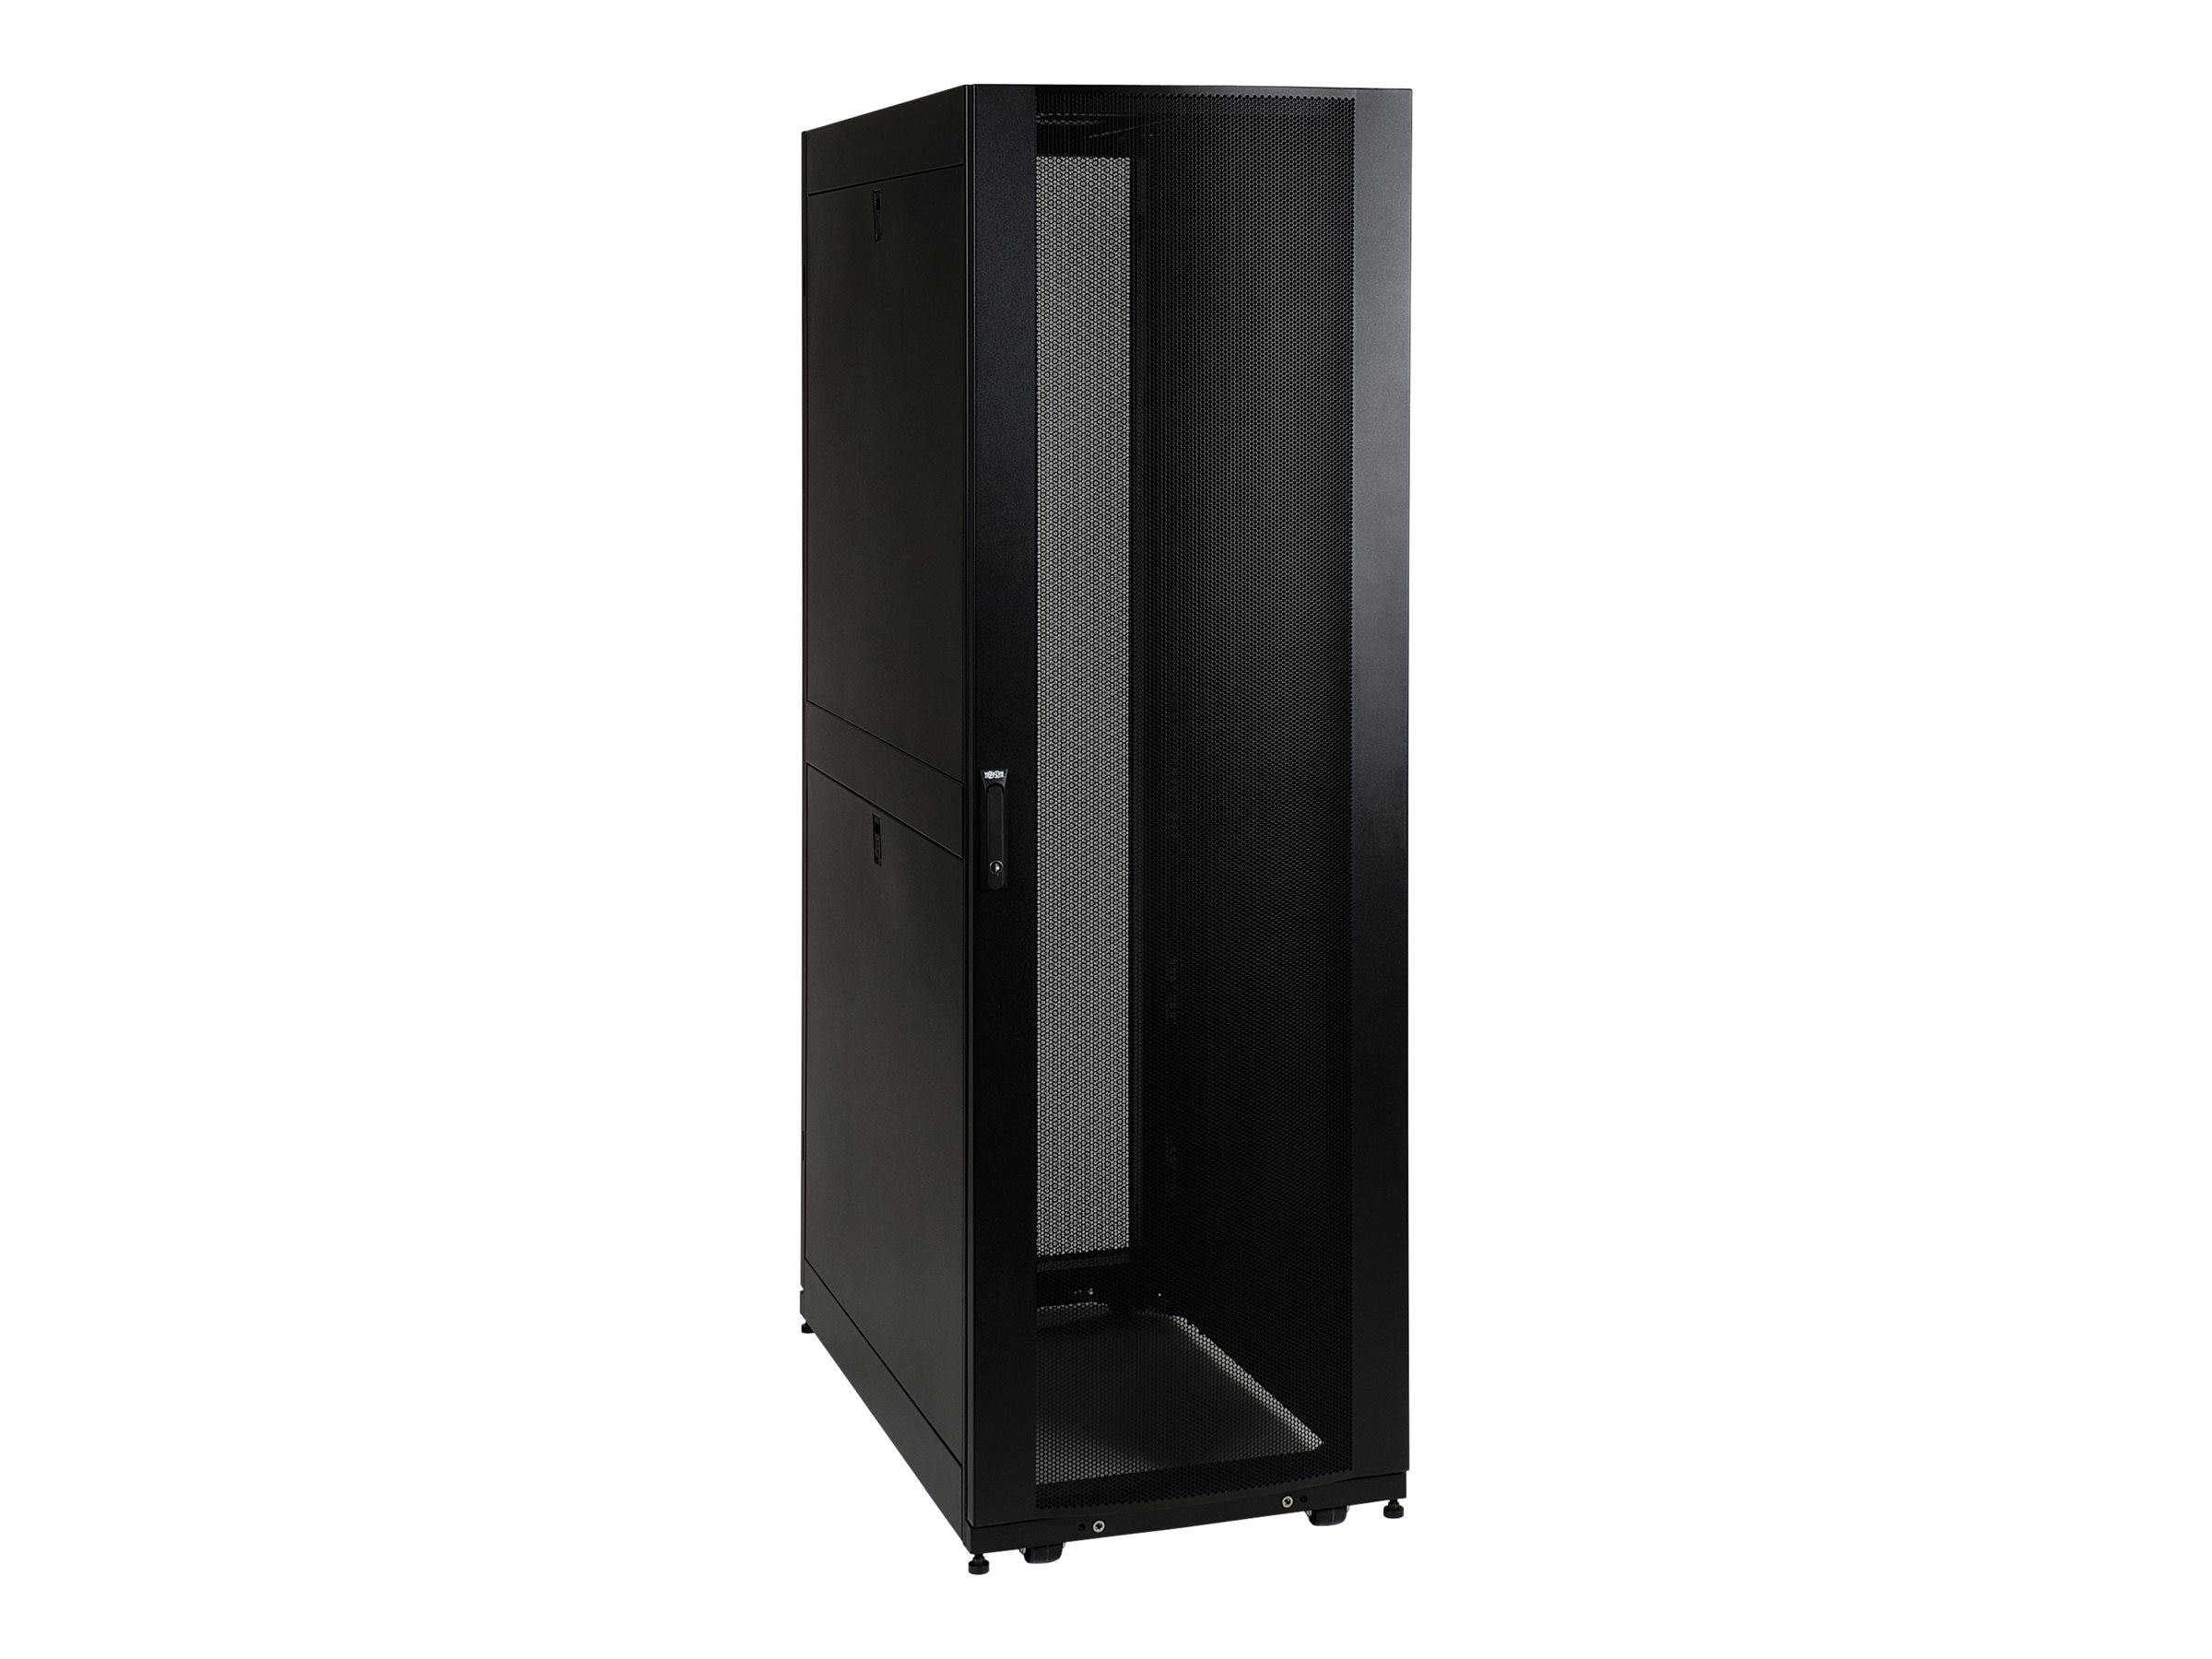 Tripp Lite 42U Rack Enclosure Server Cabinet, Instant Rebate - Save $75, SR42UB